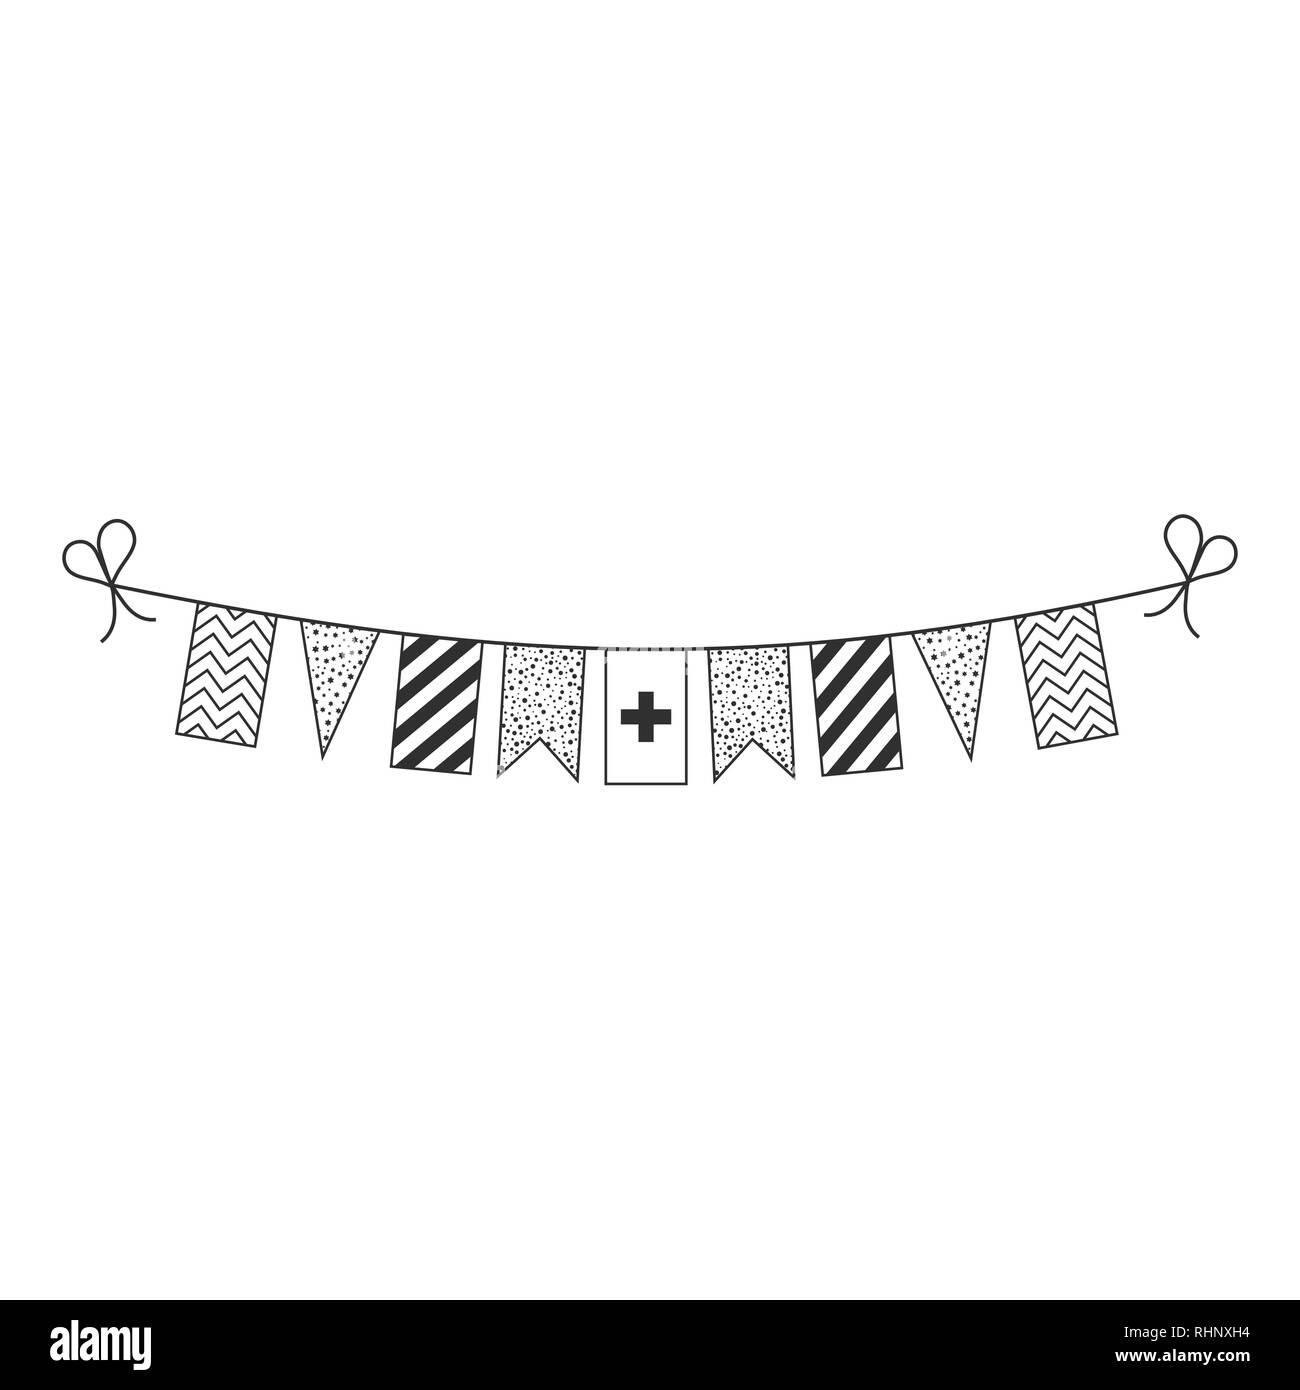 Decorations bunting flags for Switzerland national day holiday in black outline flat design. Independence day or National day holiday concept. - Stock Image